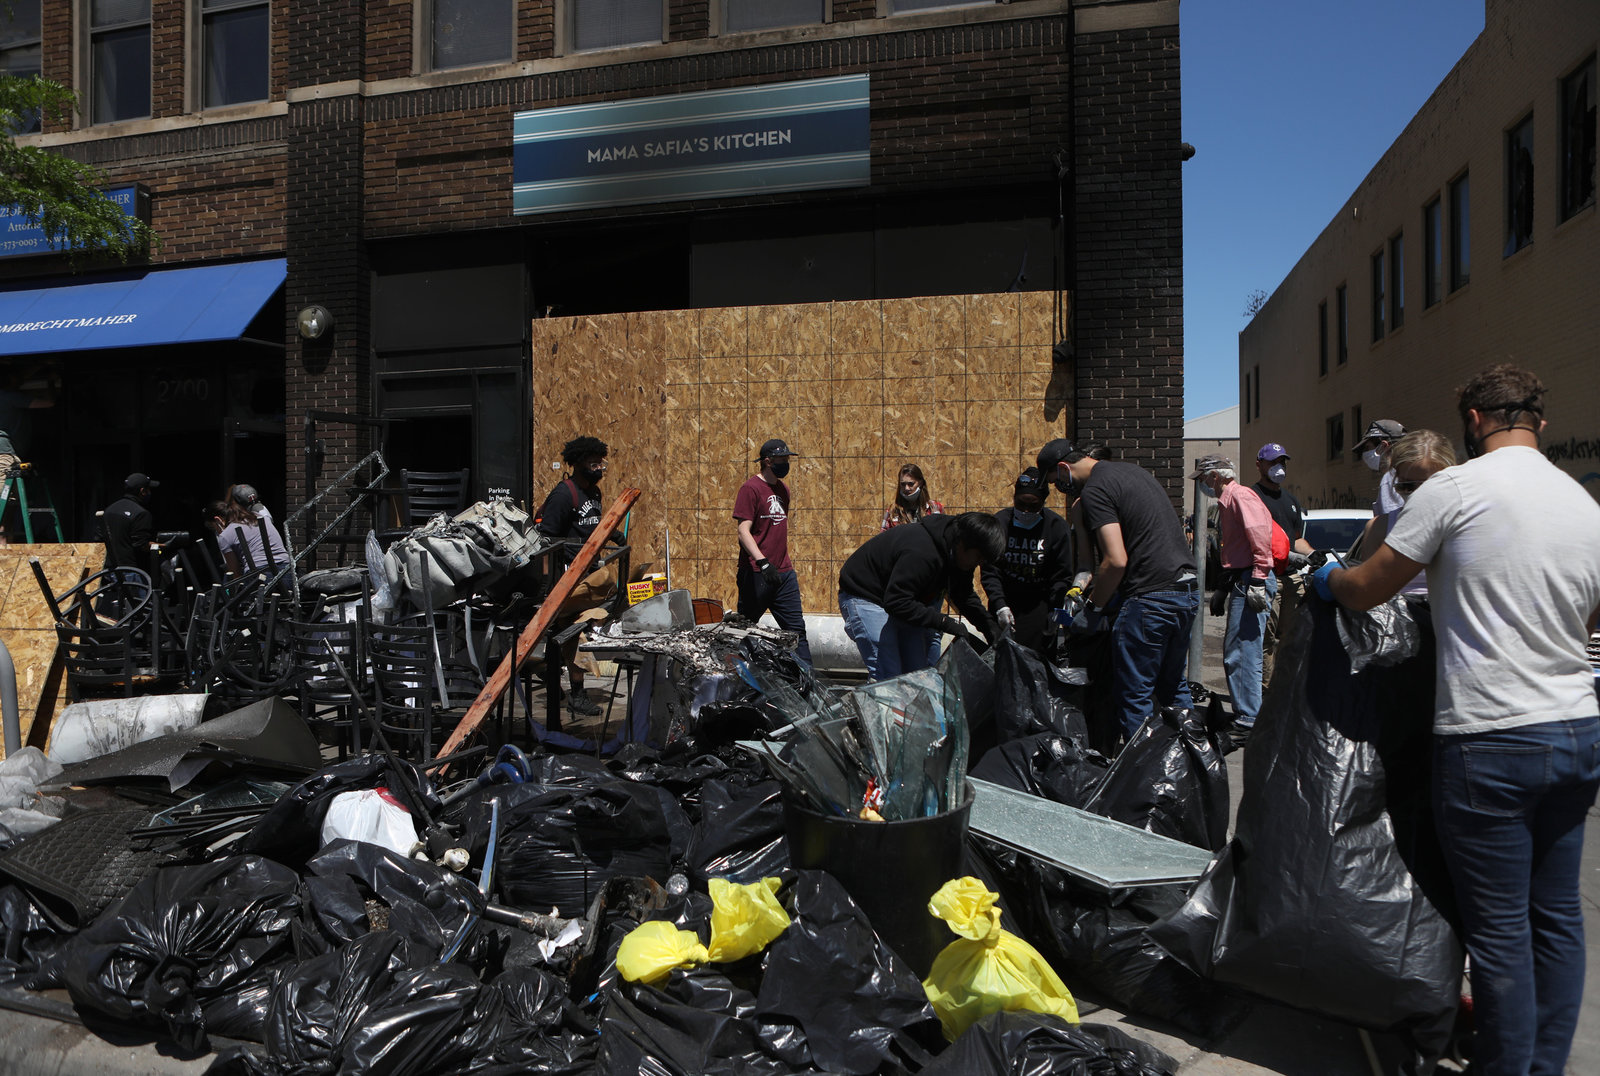 A large pile of full plastic trash bags in front of boarded up buildings, with people working in face masks.